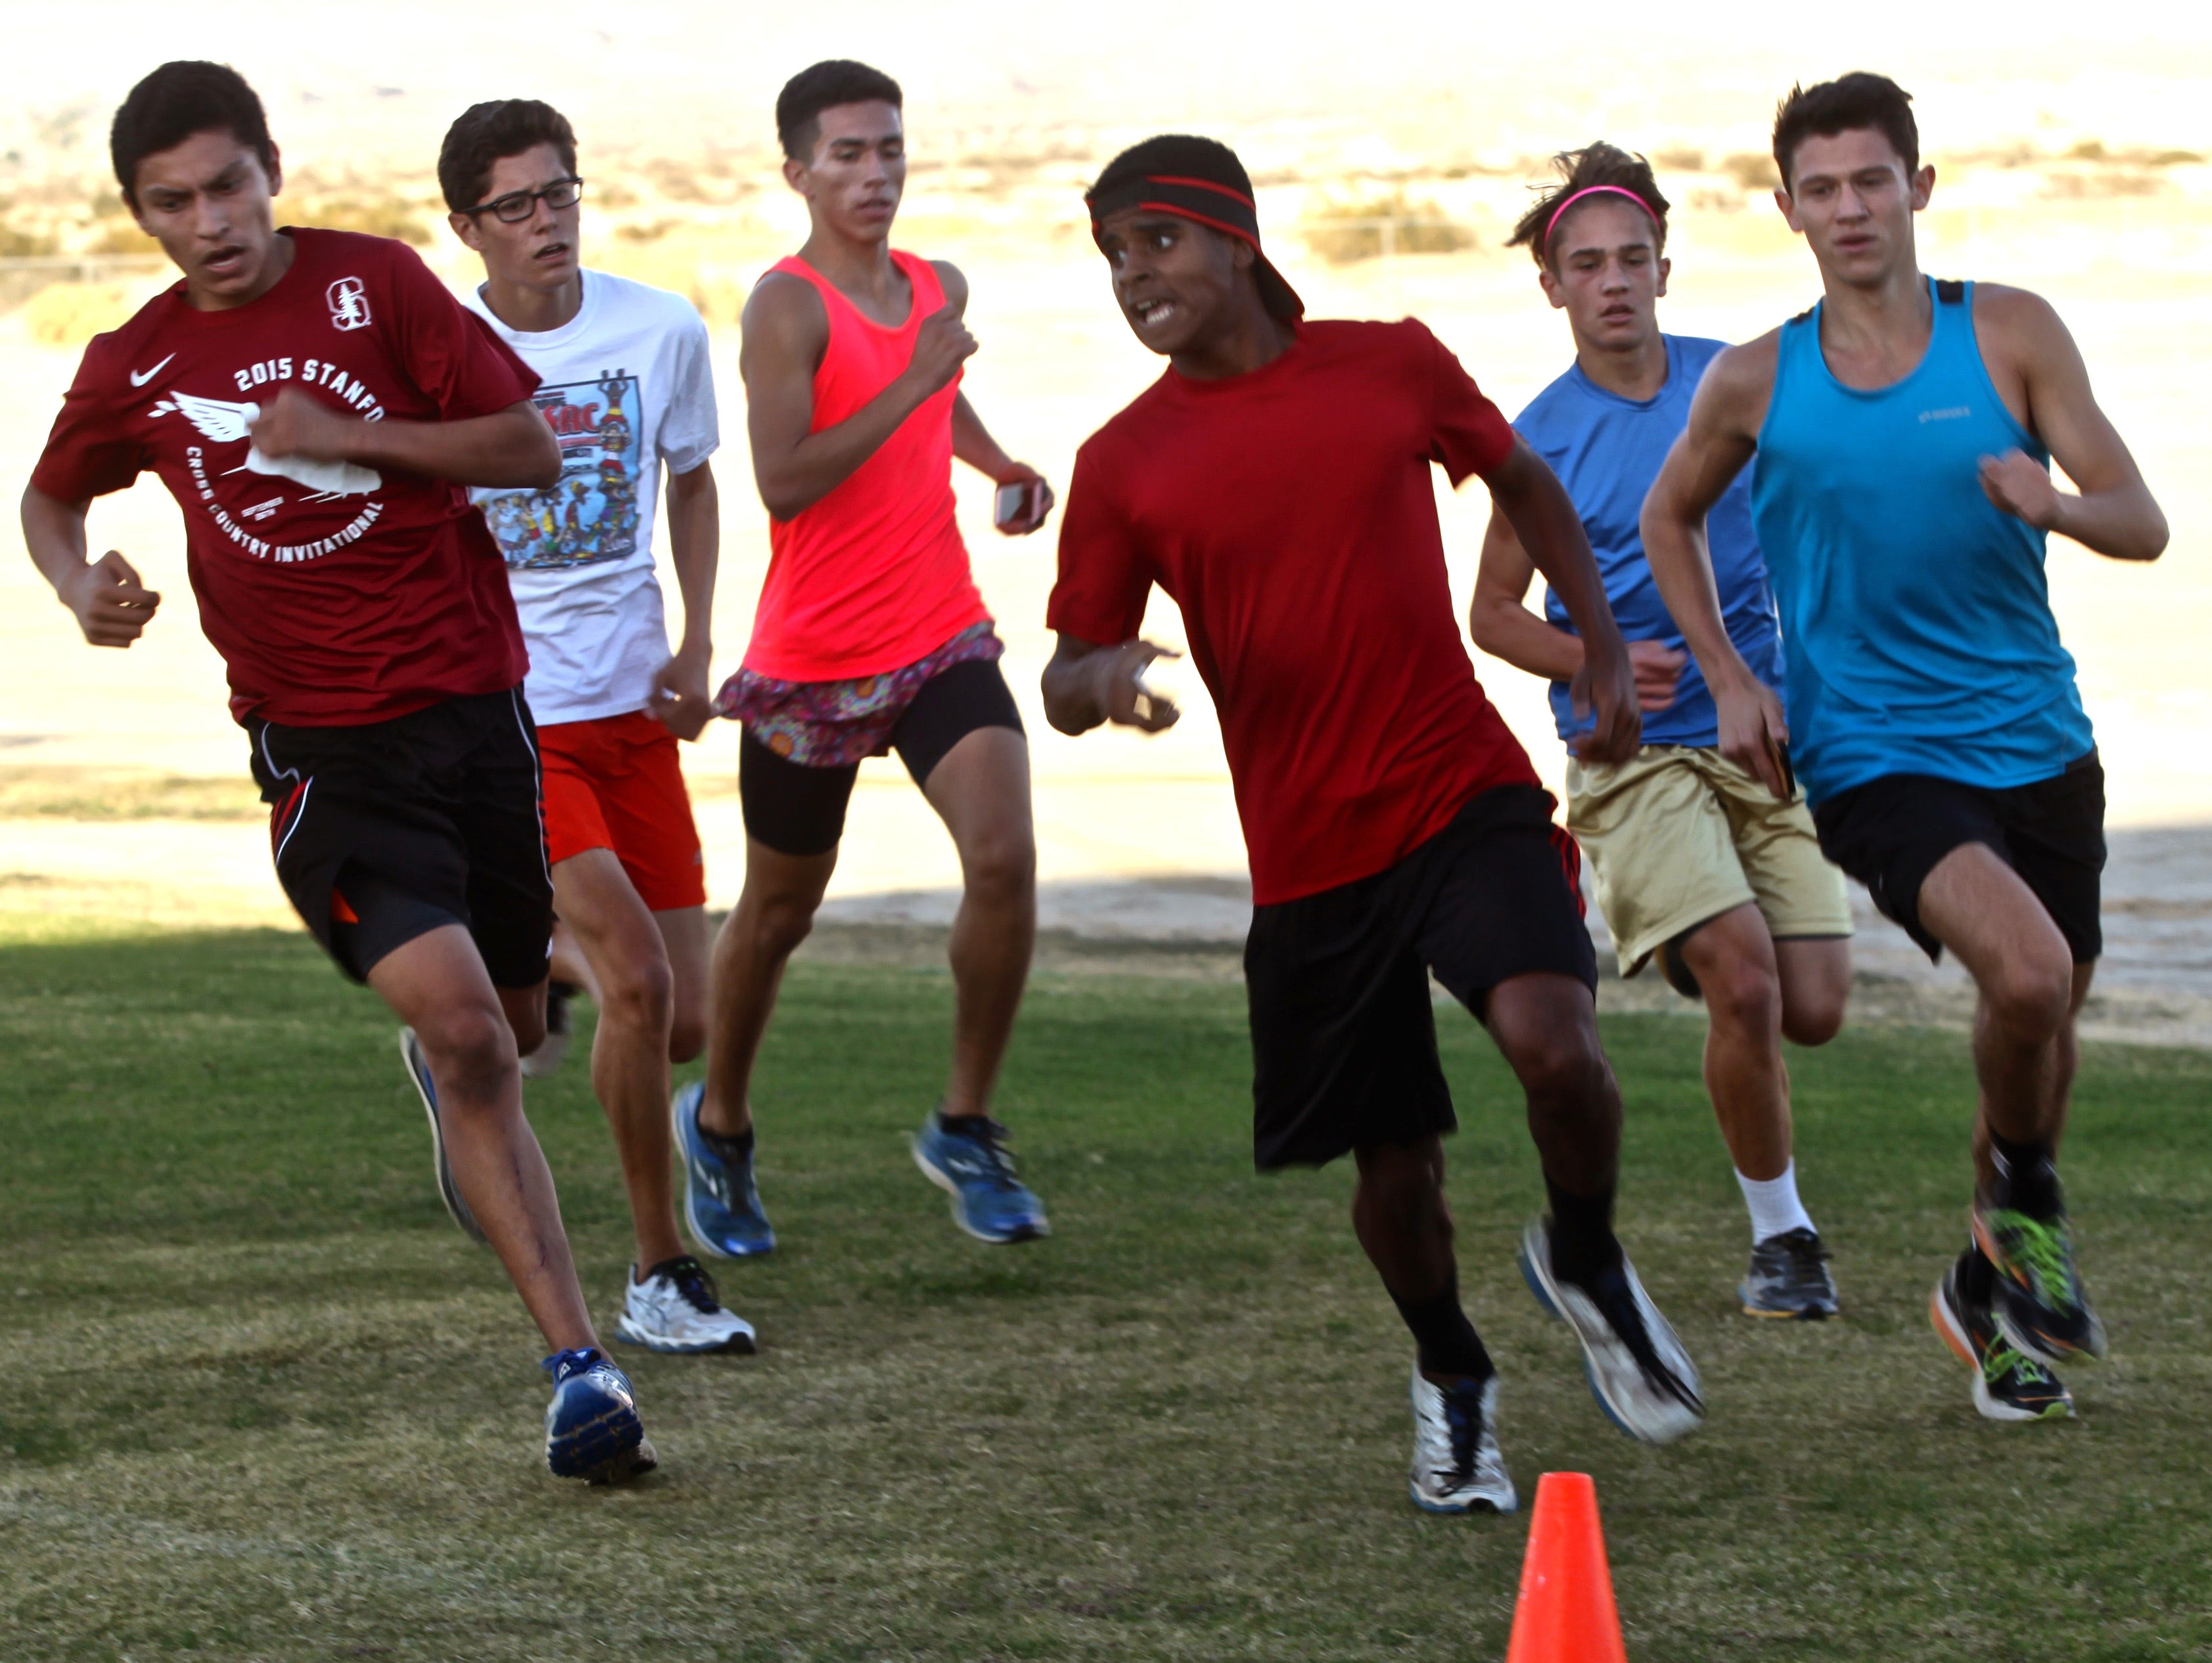 Students of the Xavier Prep cross country team run together during a practice session on Tuesday, Nov. 24, 2015.